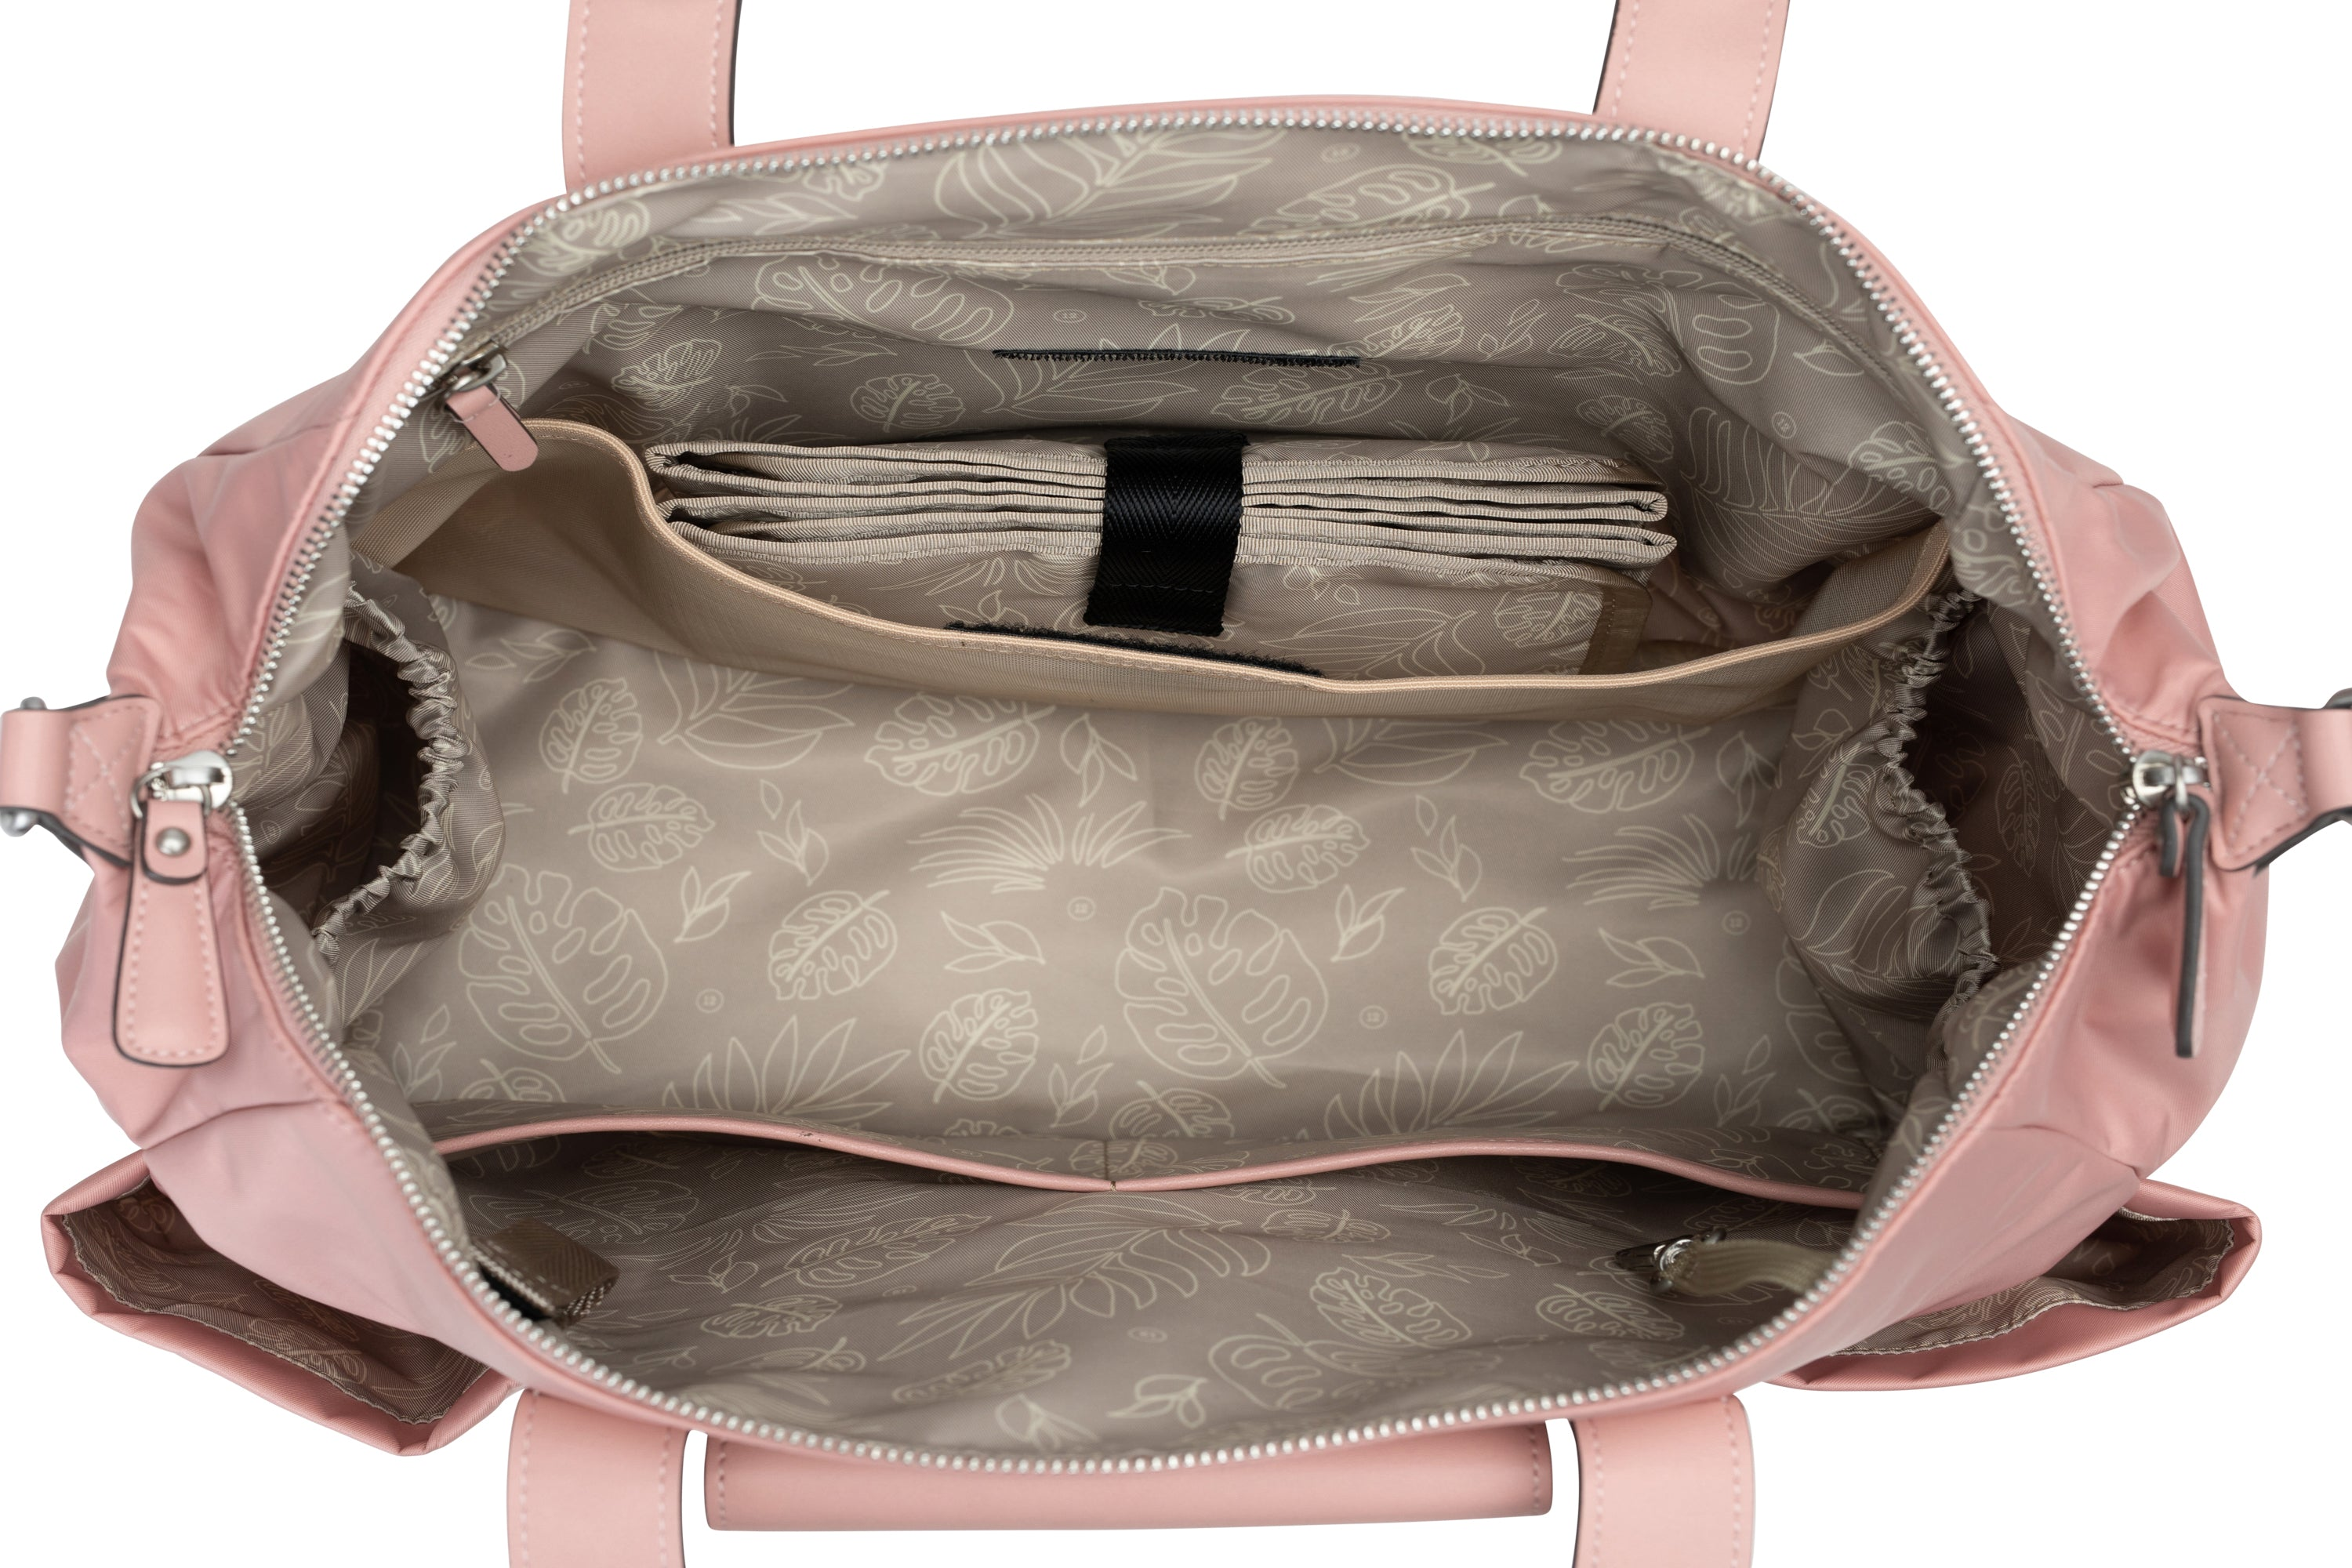 Peek-a-Boo Satchel - Pink - Project Nursery